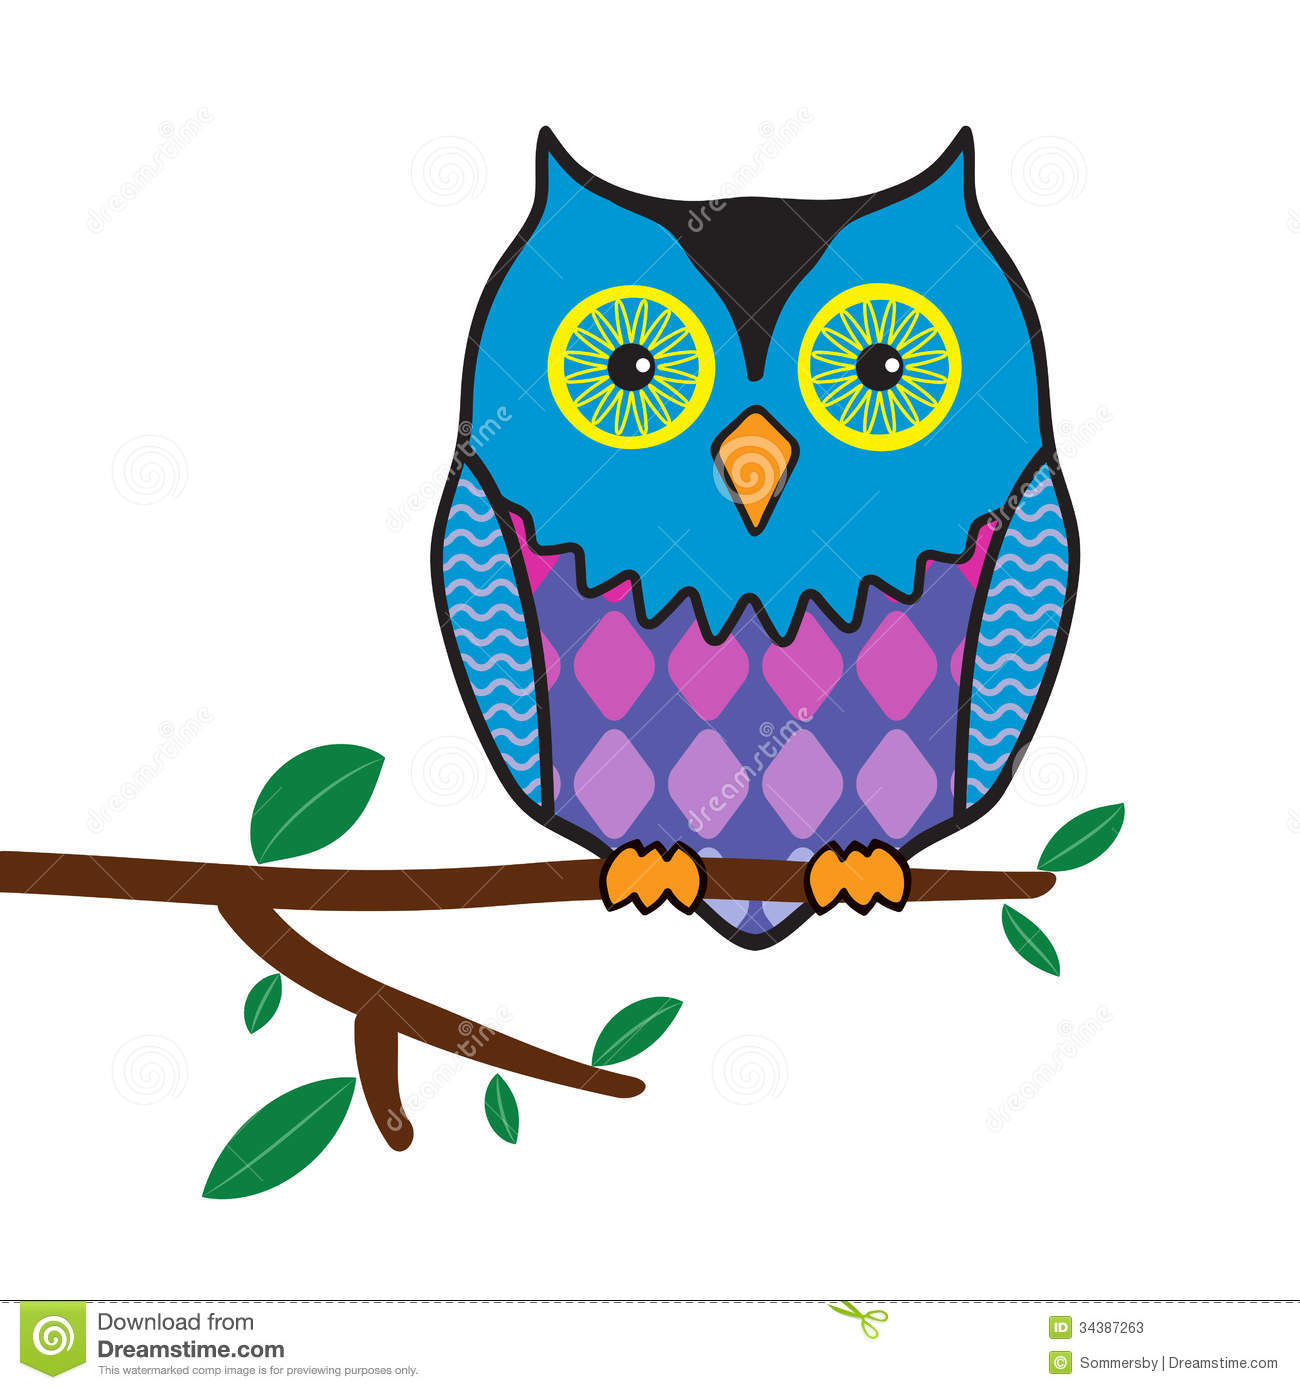 Funny Owl Sitting On A Tree Branch Stock-Funny Owl Sitting On A Tree Branch Stock Photos Image 34387263-5